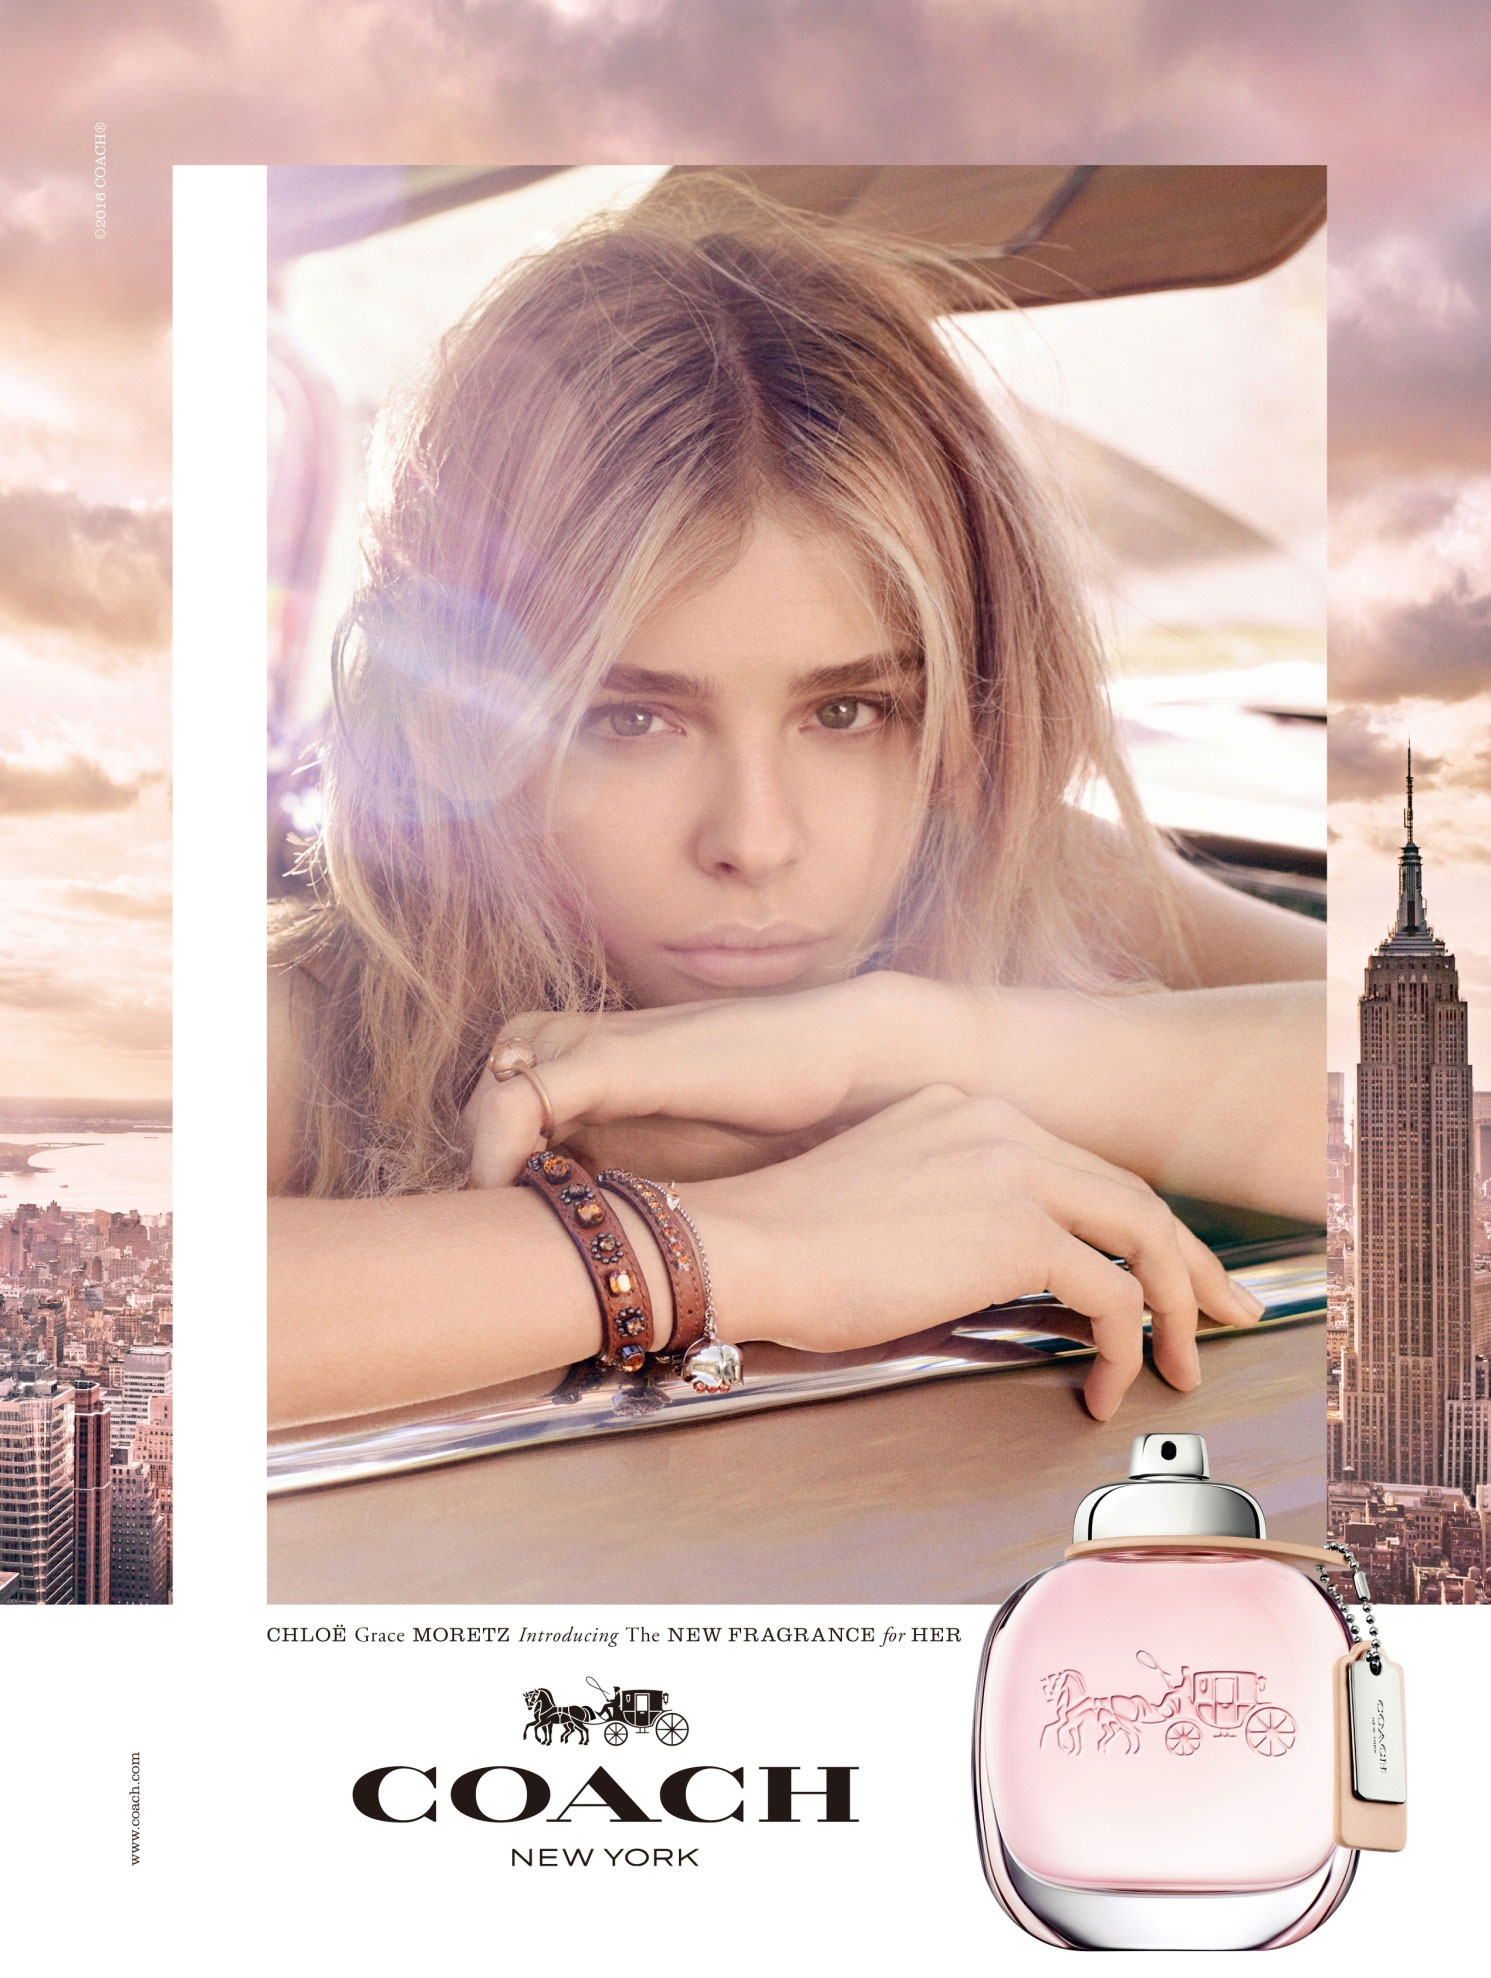 Coach FallWinter Campaign featuring Chloe Grace